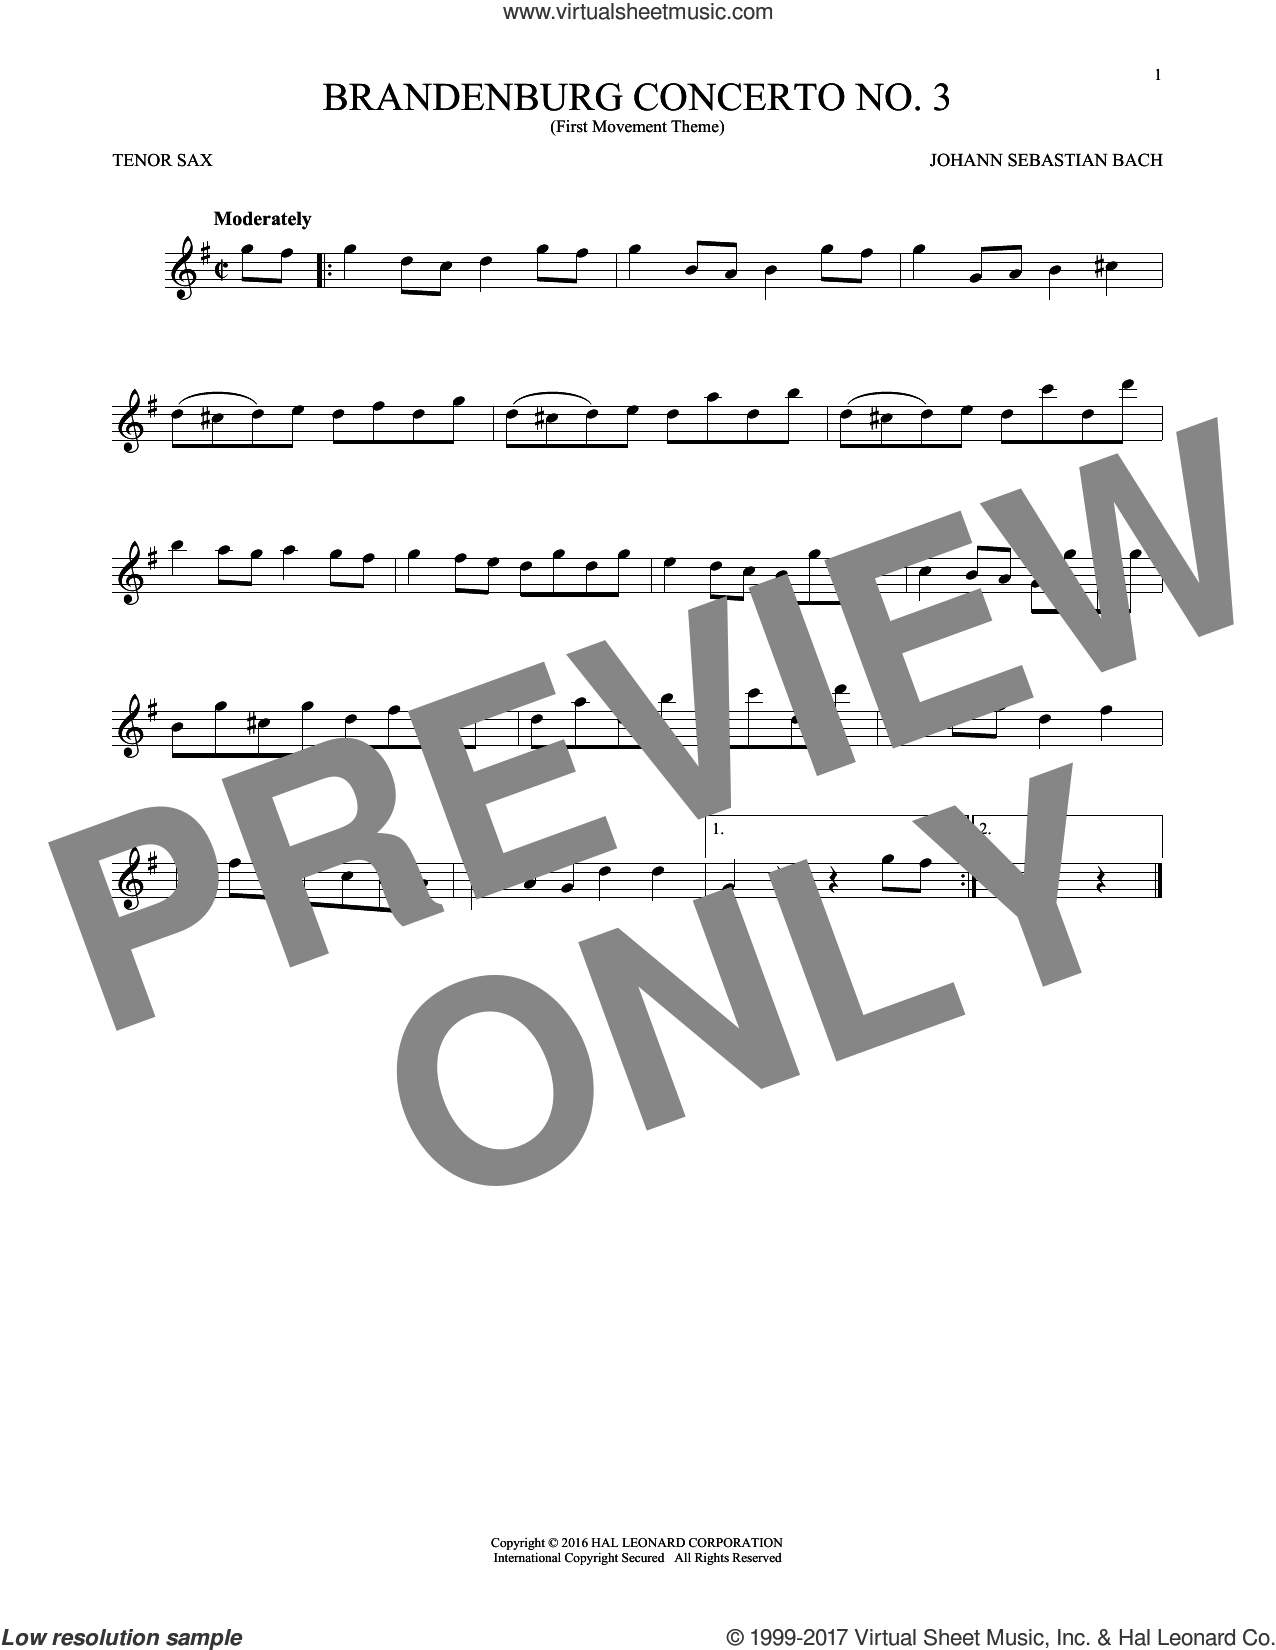 Brandenburg Concerto No. 3 sheet music for tenor saxophone solo by Johann Sebastian Bach, classical score, intermediate skill level